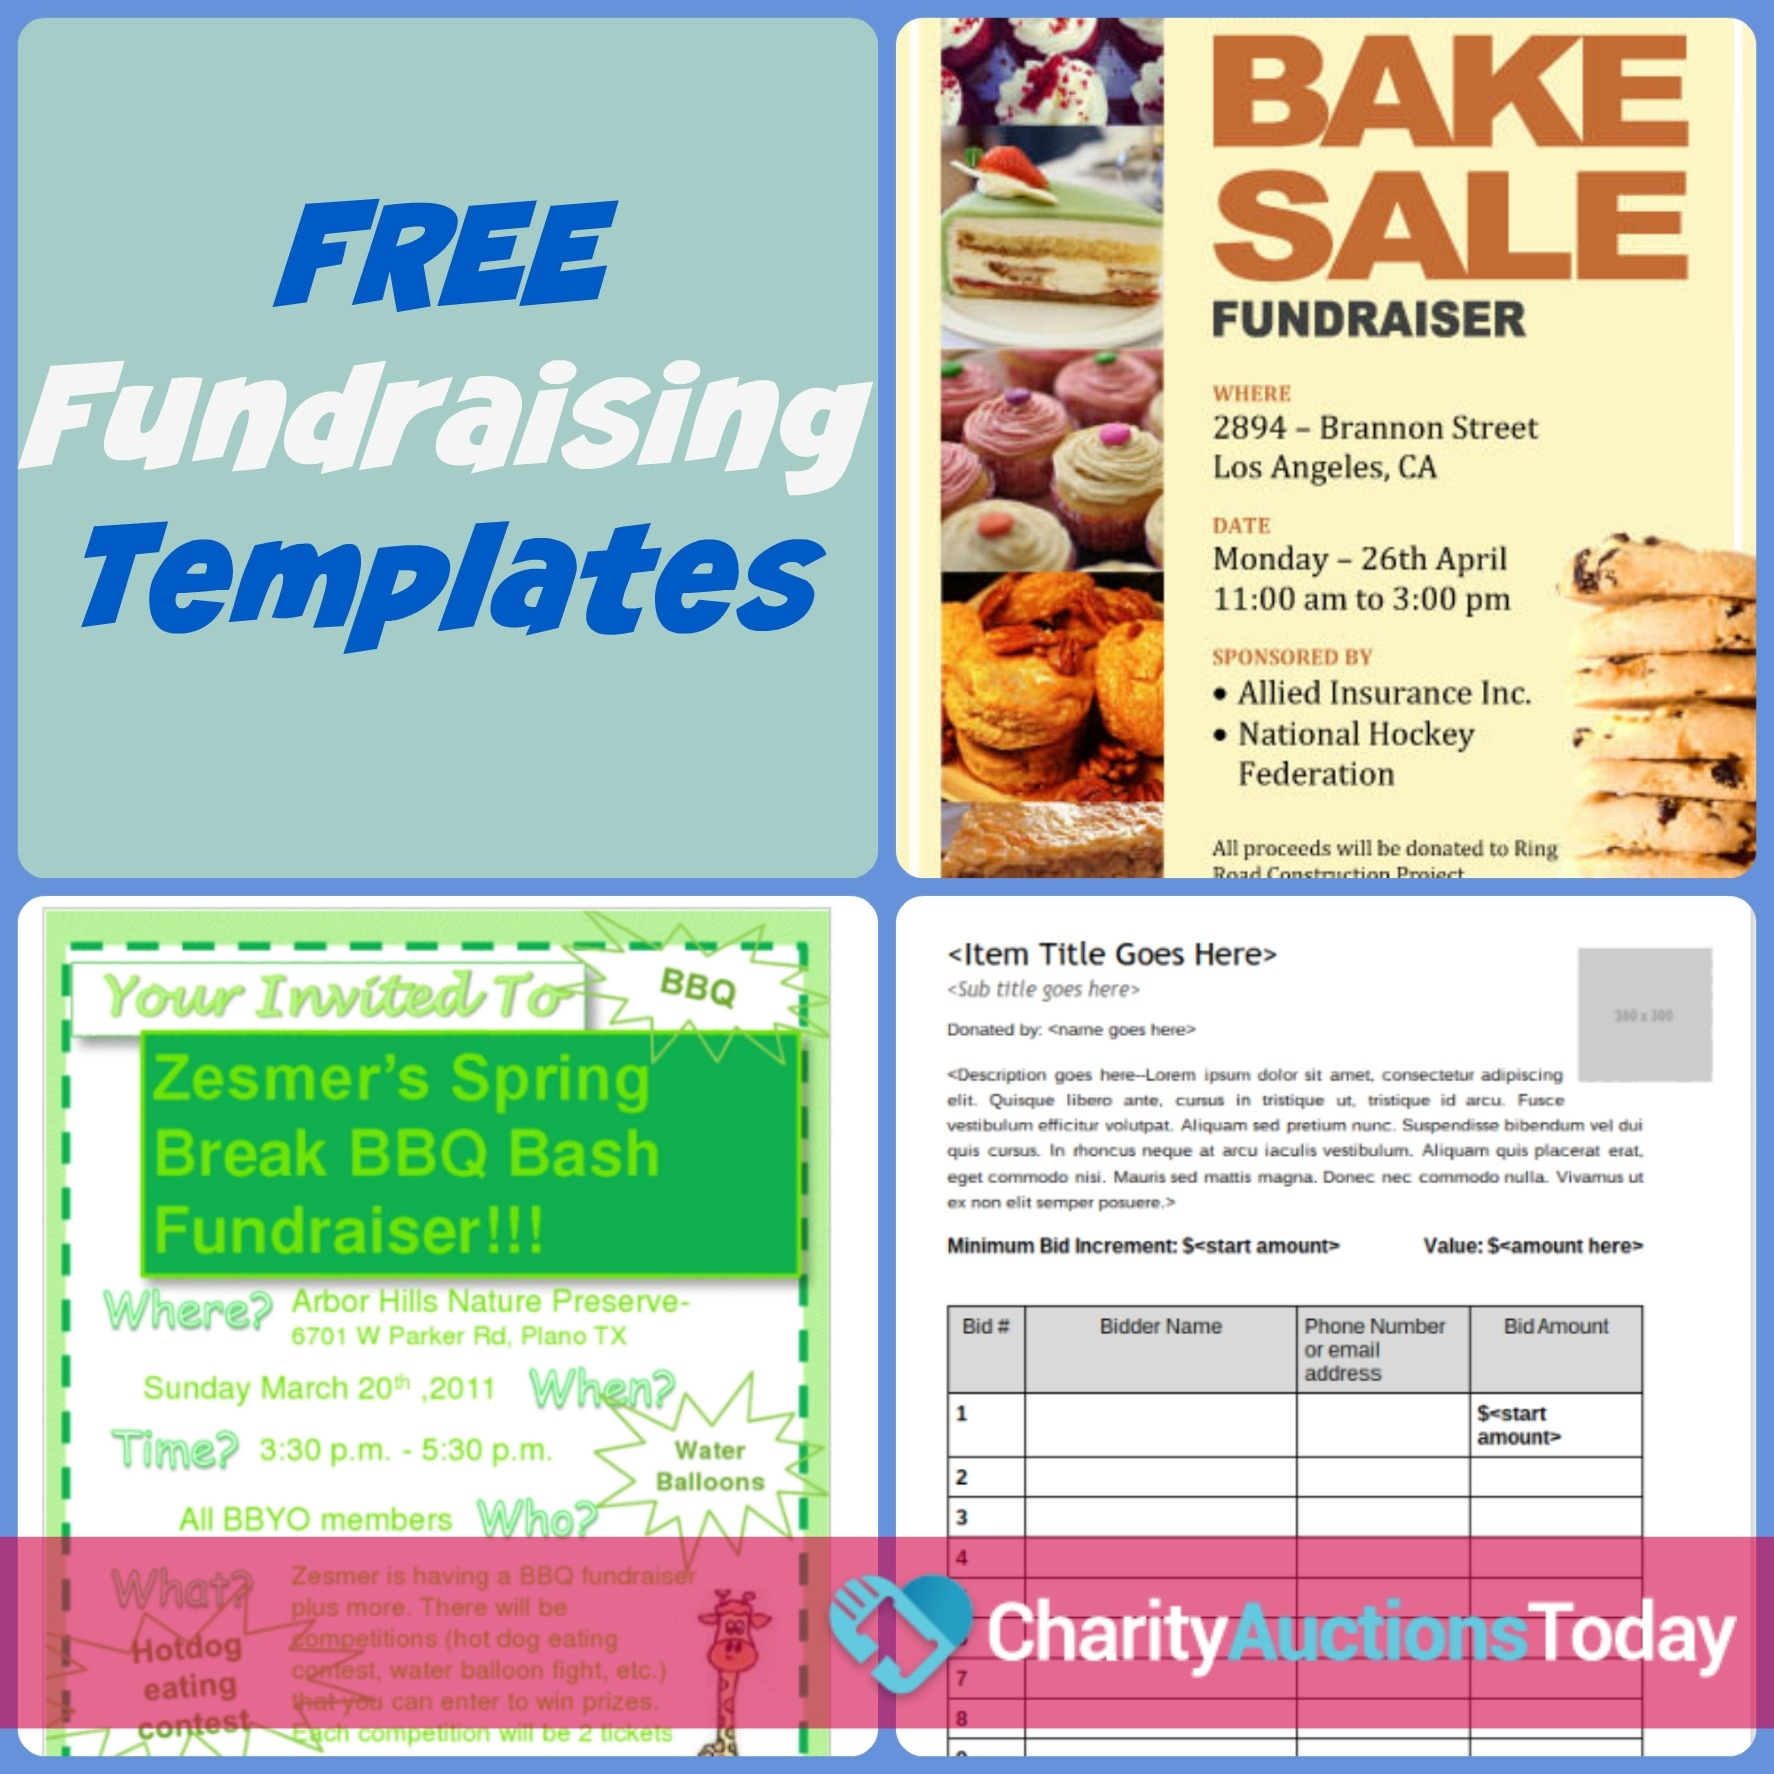 Free Fundraiser Flyer   Charity Auctions Today - Free Printable Event Flyer Templates